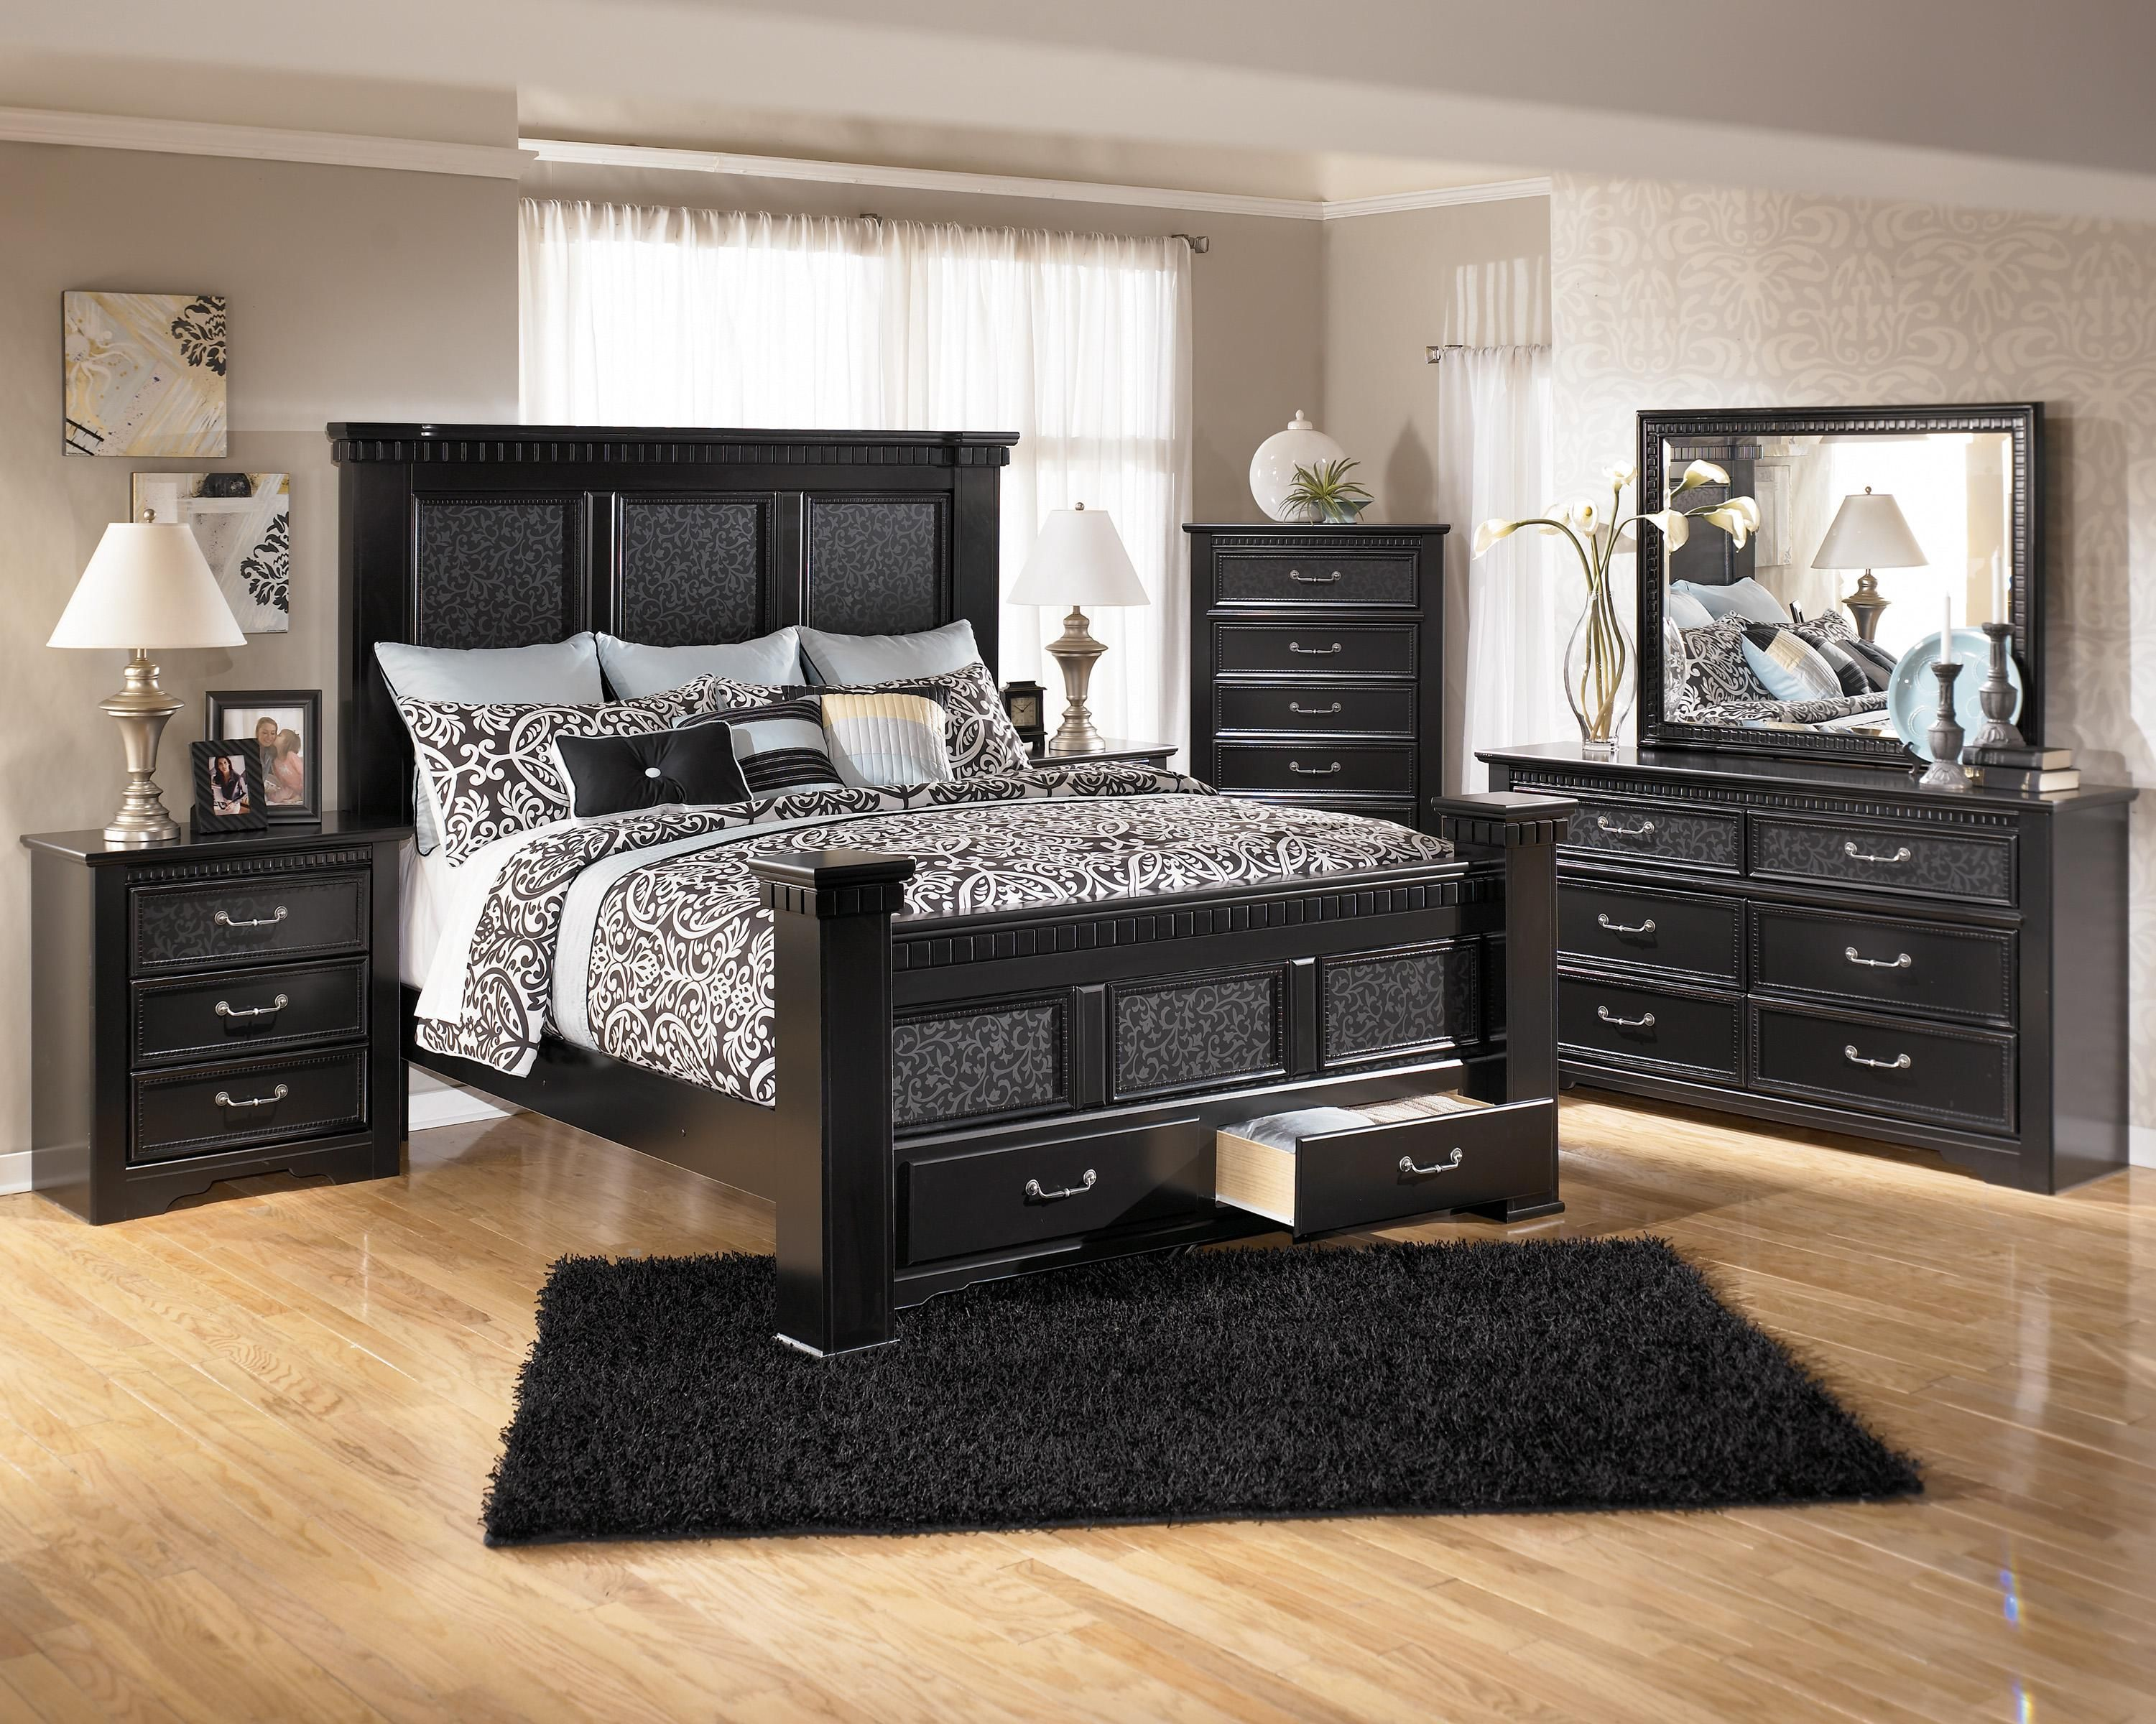 Black White Bedroom Furniture: Ashley Furniture Cavallino Bedroom Set With Mansion Poster